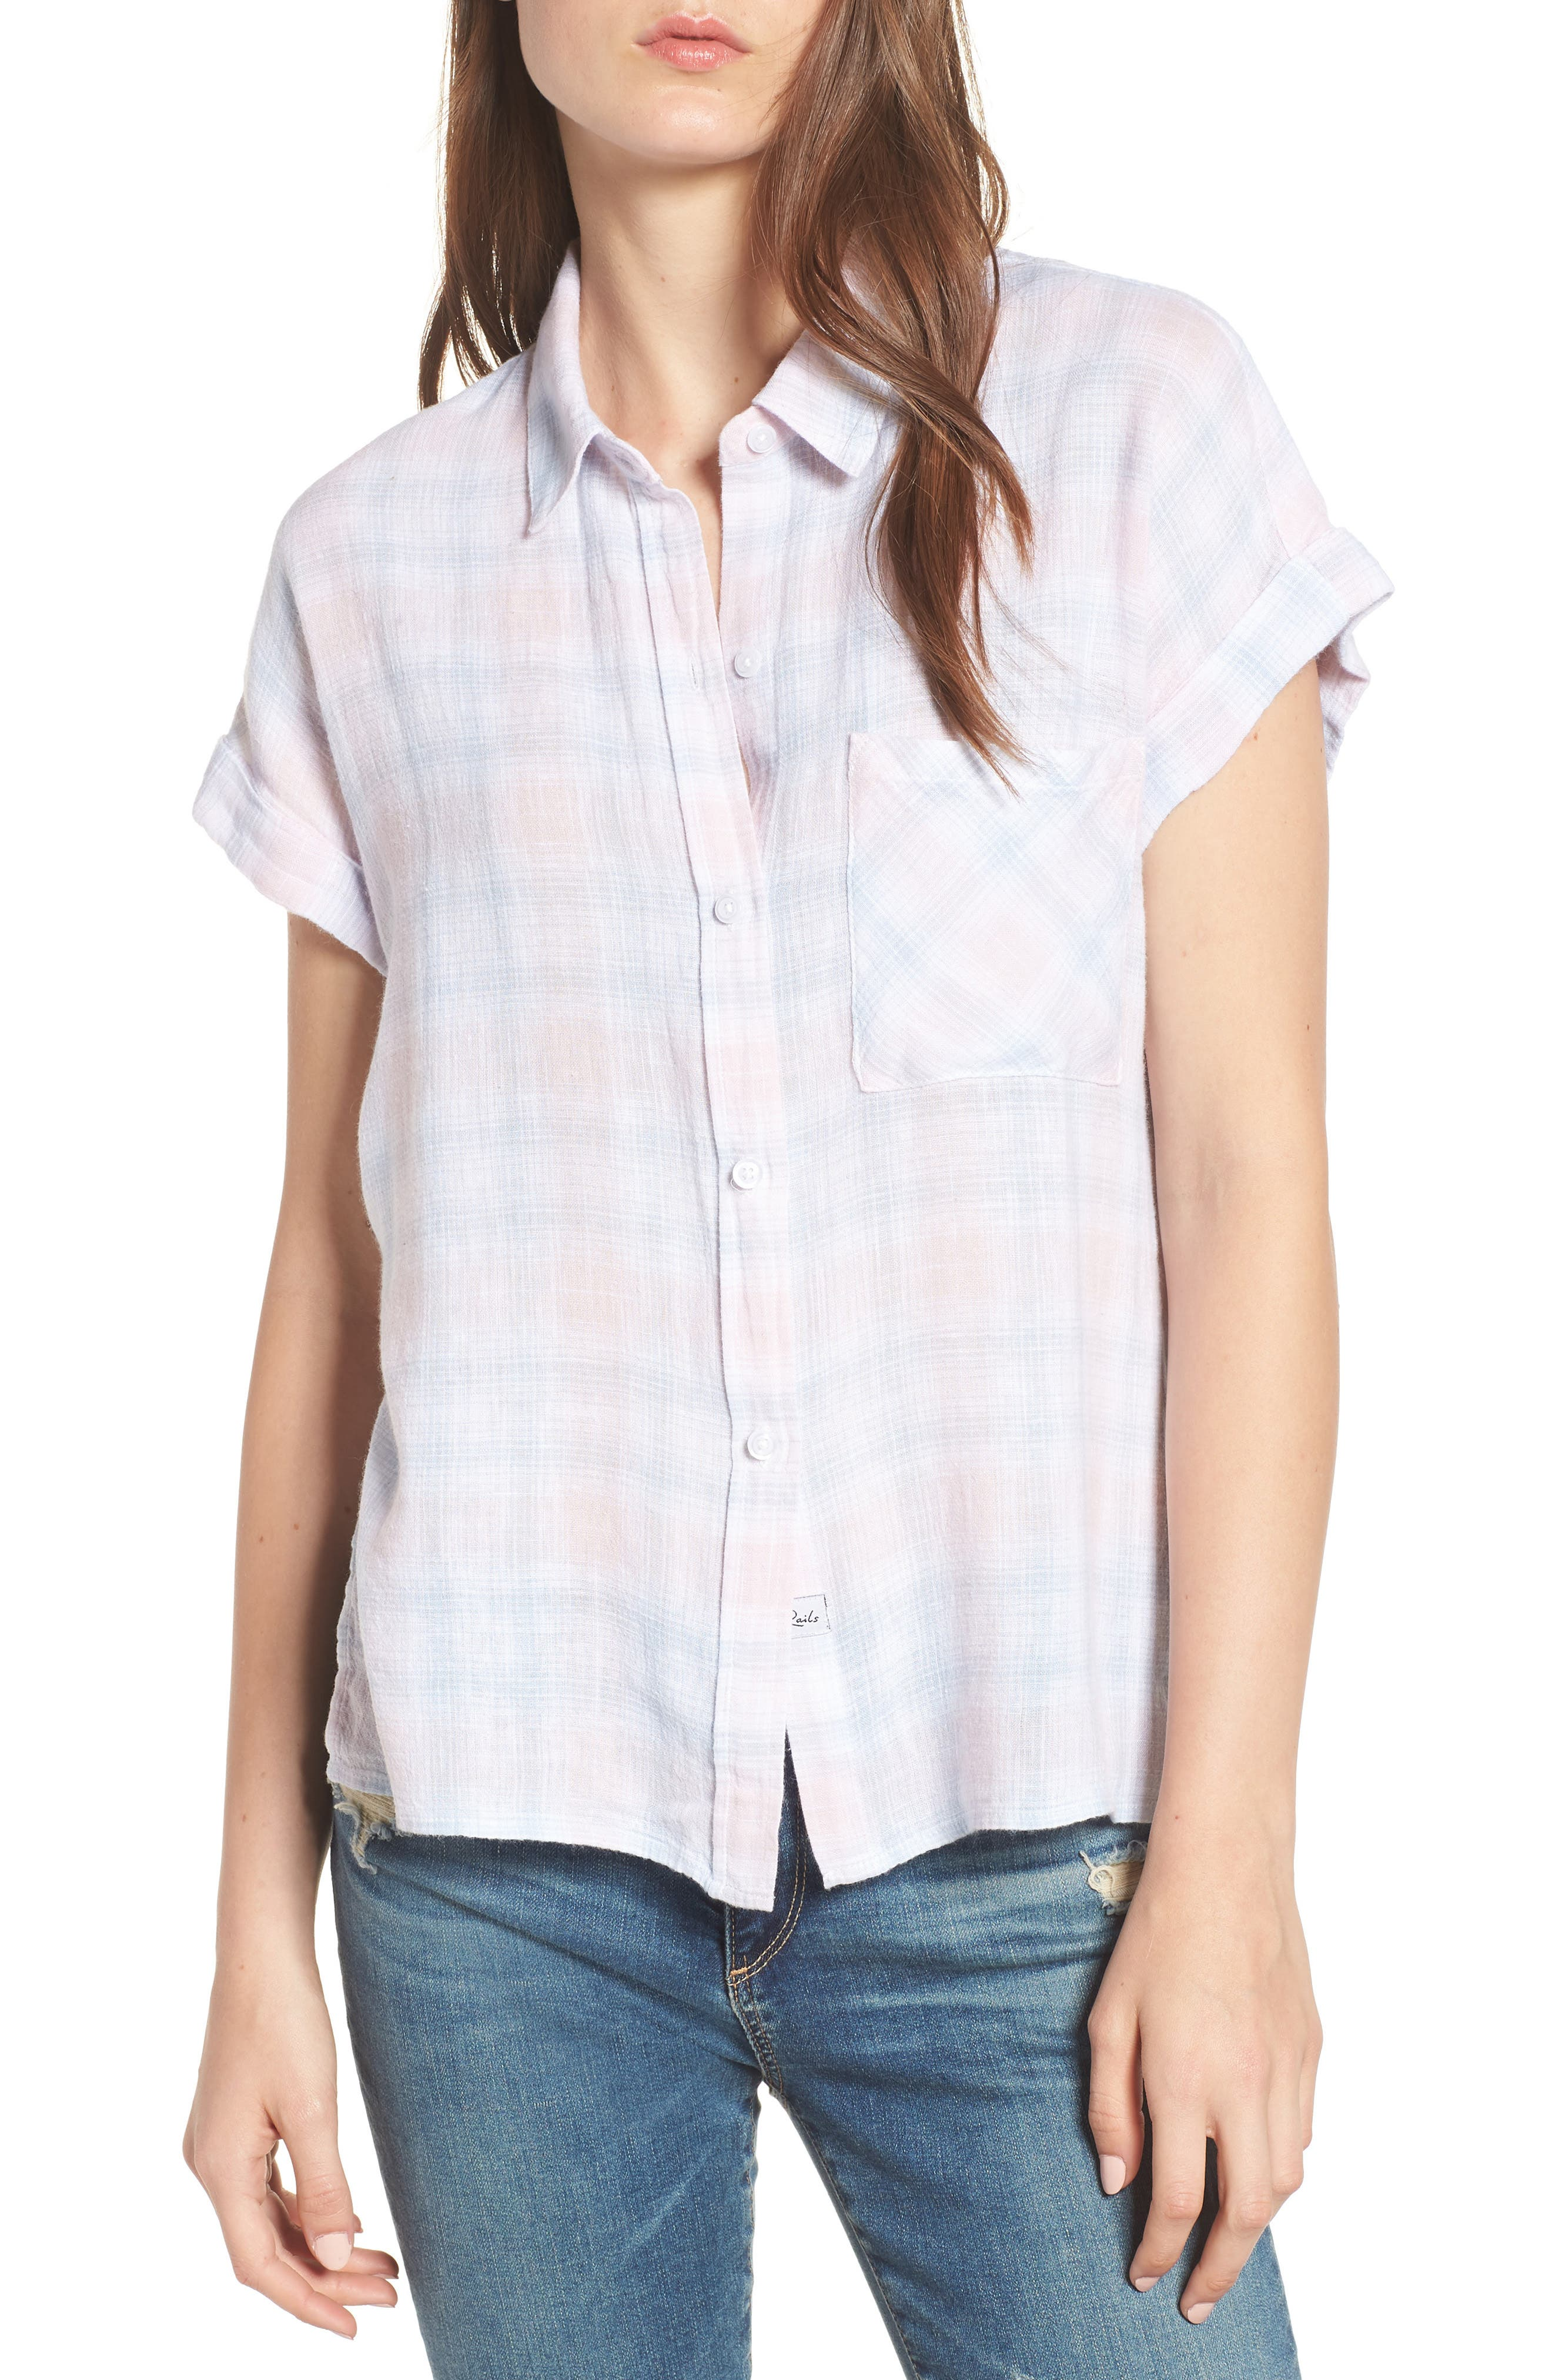 Whitney Shirt,                             Main thumbnail 1, color,                             White Blush Sky